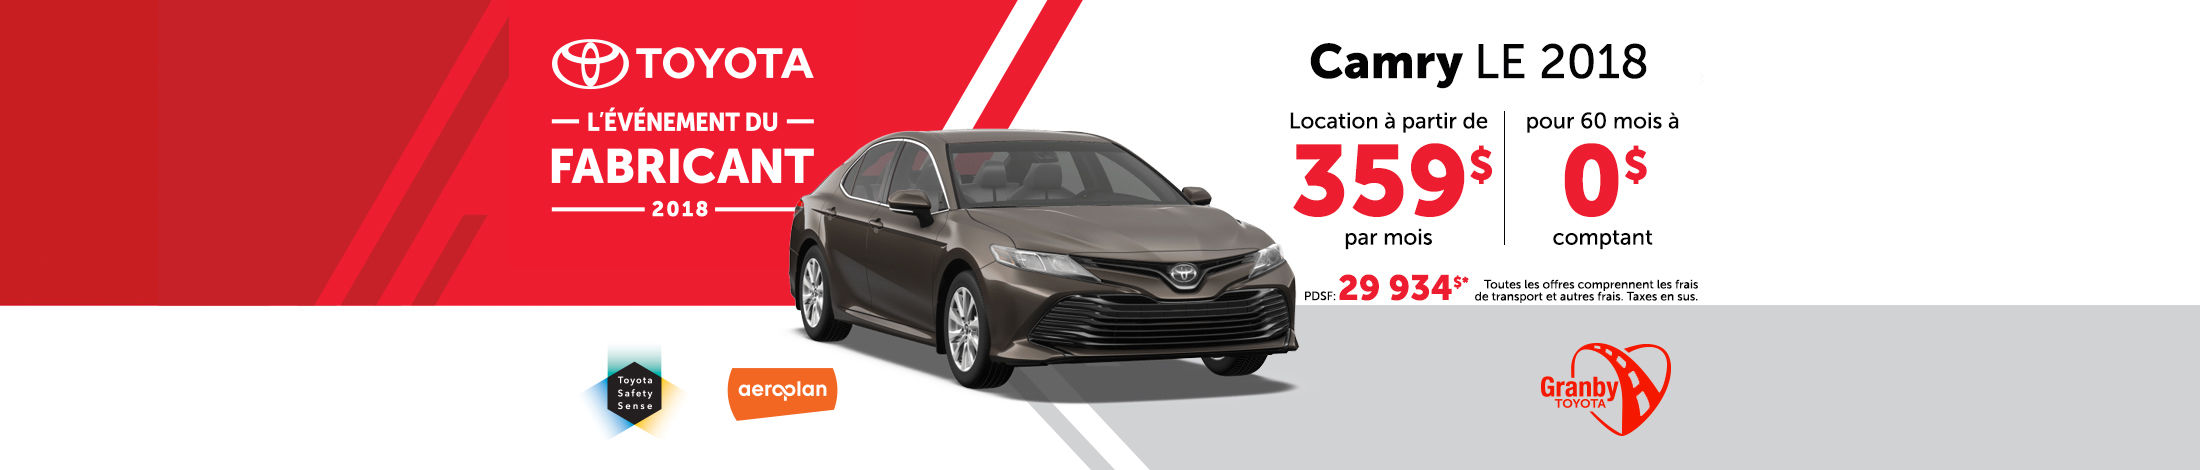 Camry LE 2018 promotion